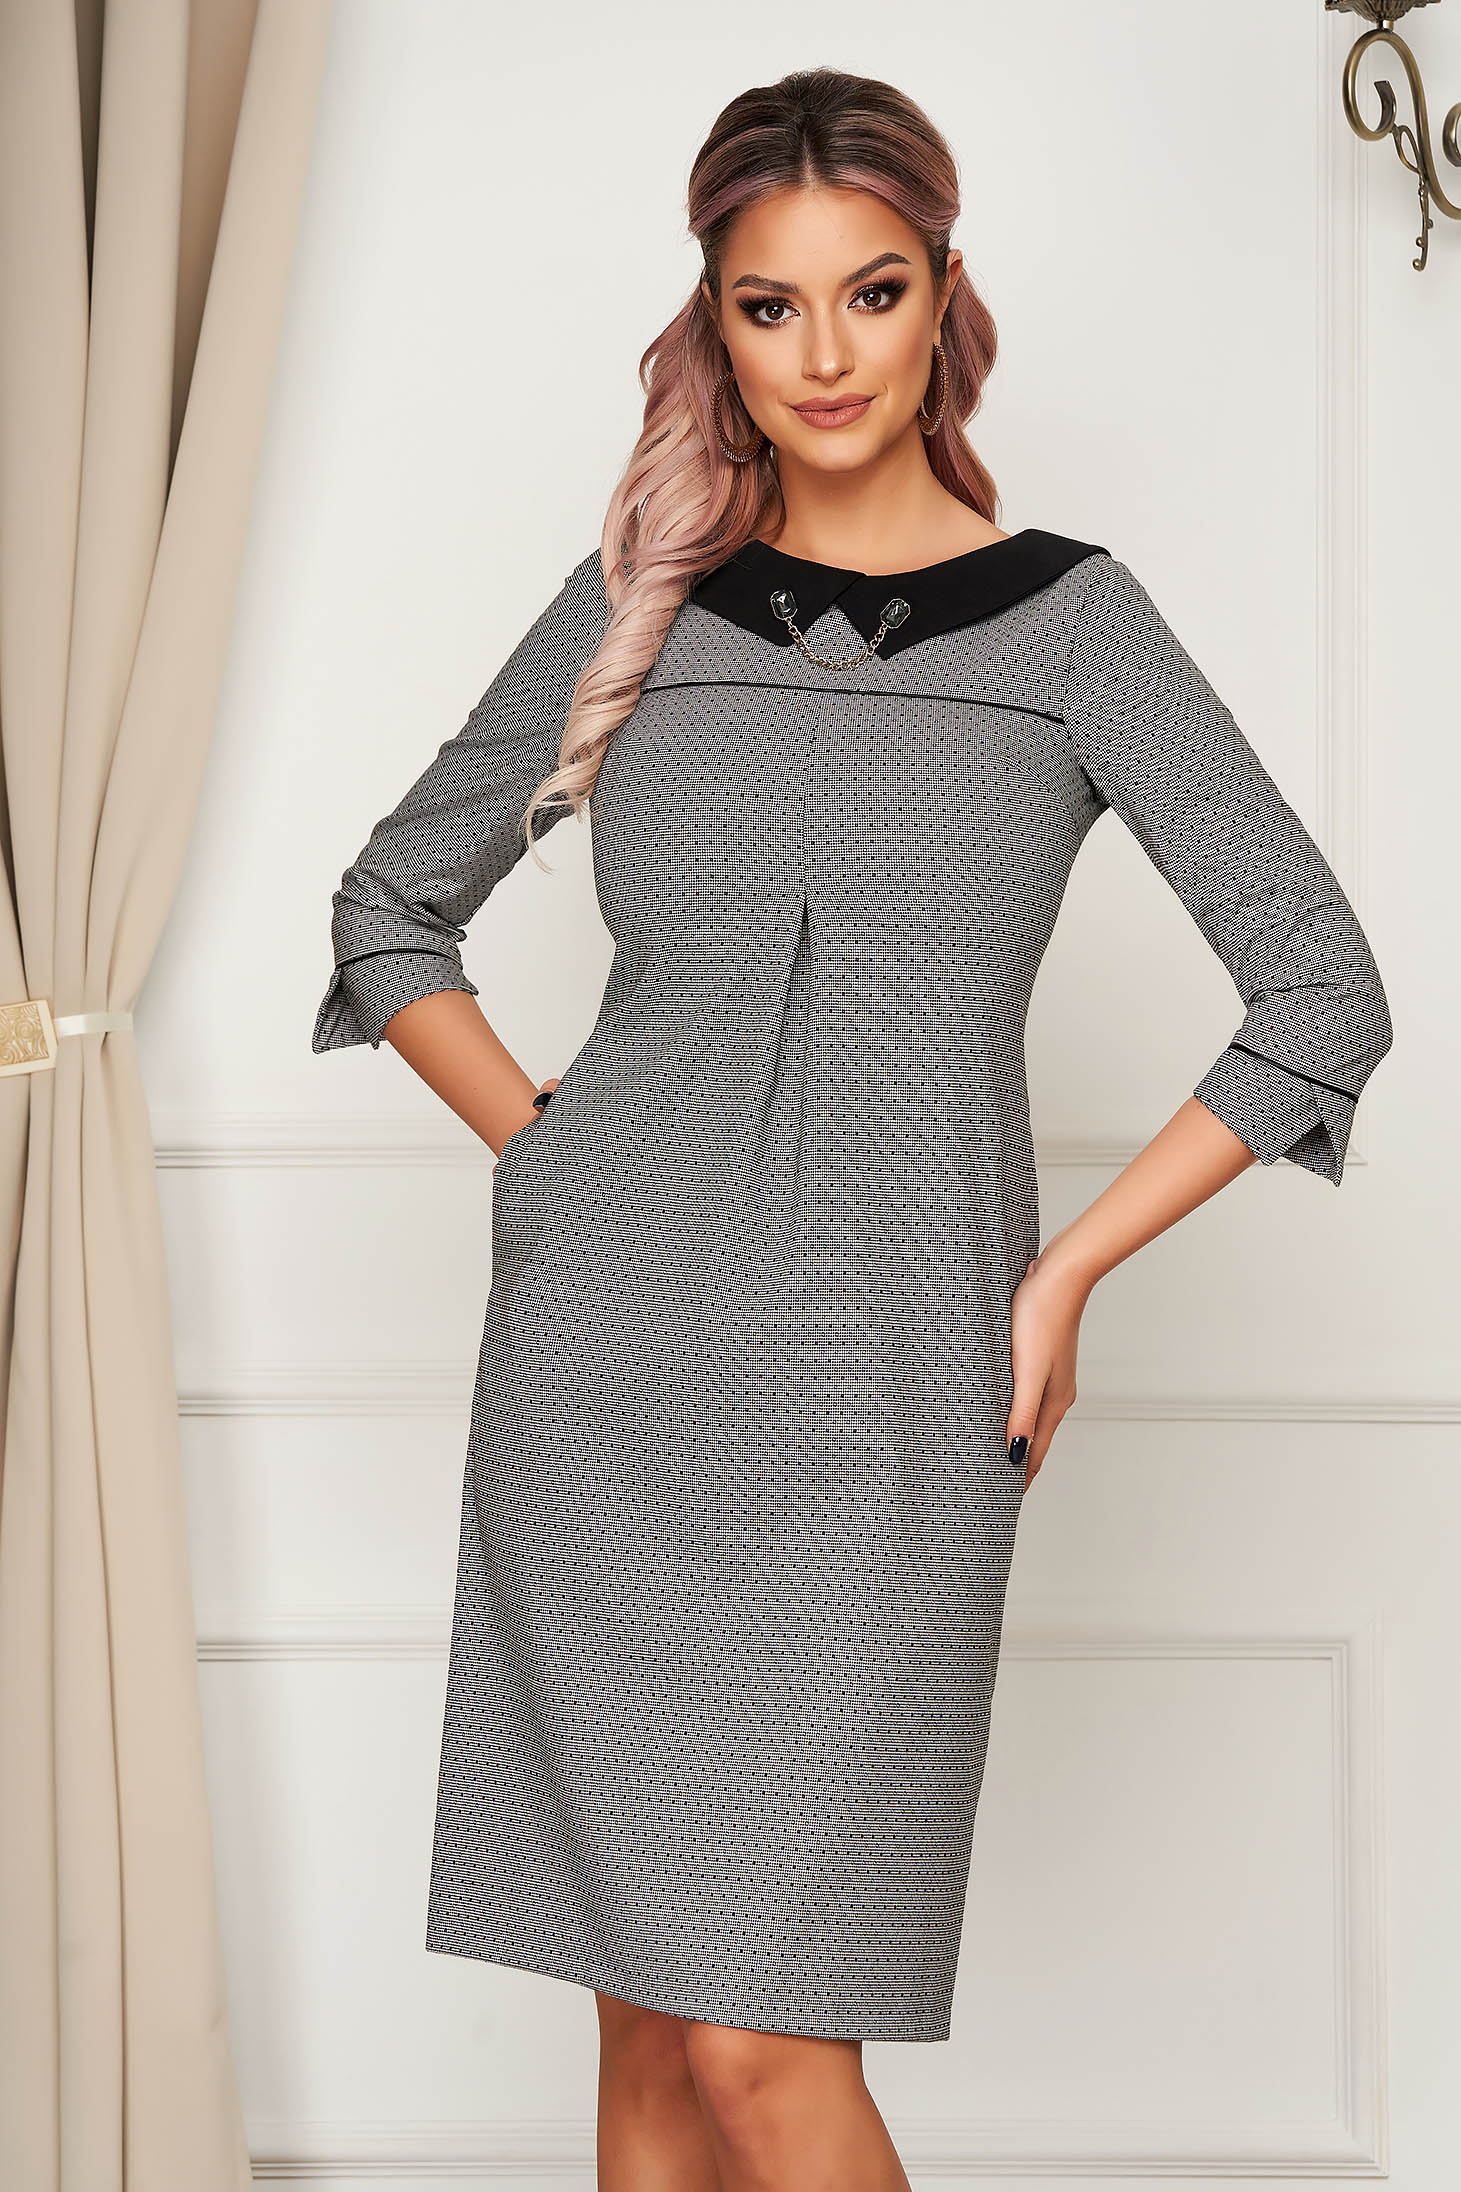 Grey dress office straight slightly elastic fabric with collar metallic details